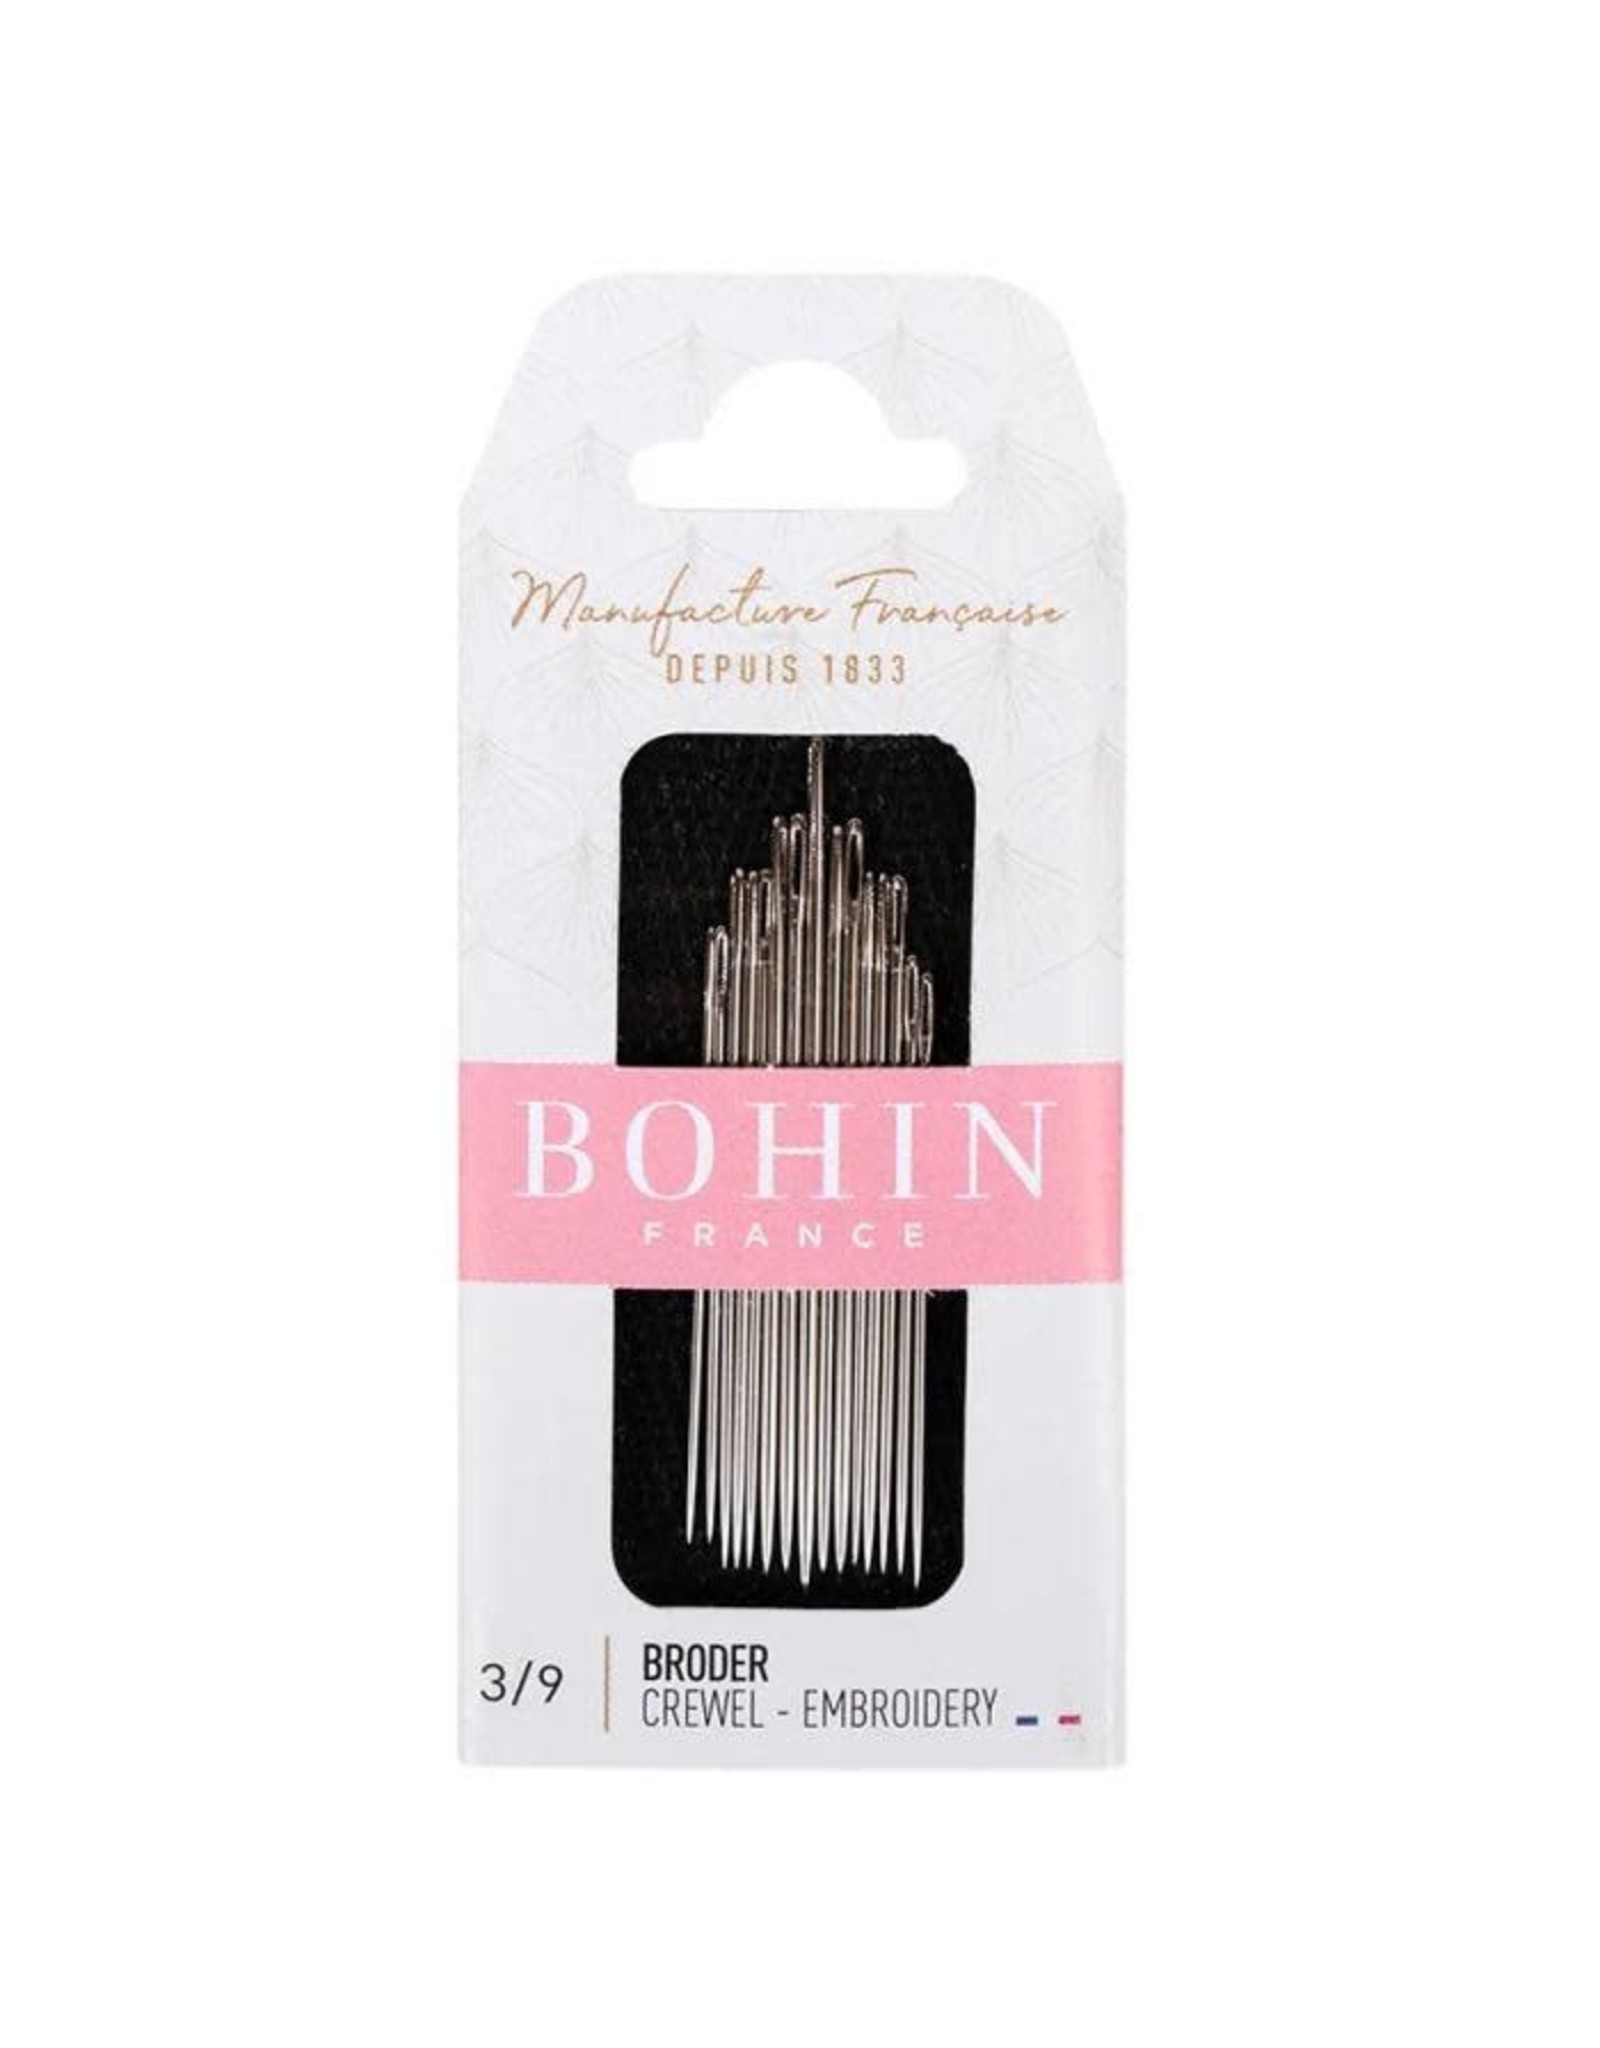 PD Crewel-Embroidery Needles, Assorted Sizes 3/9 - 15 ct., Bohin